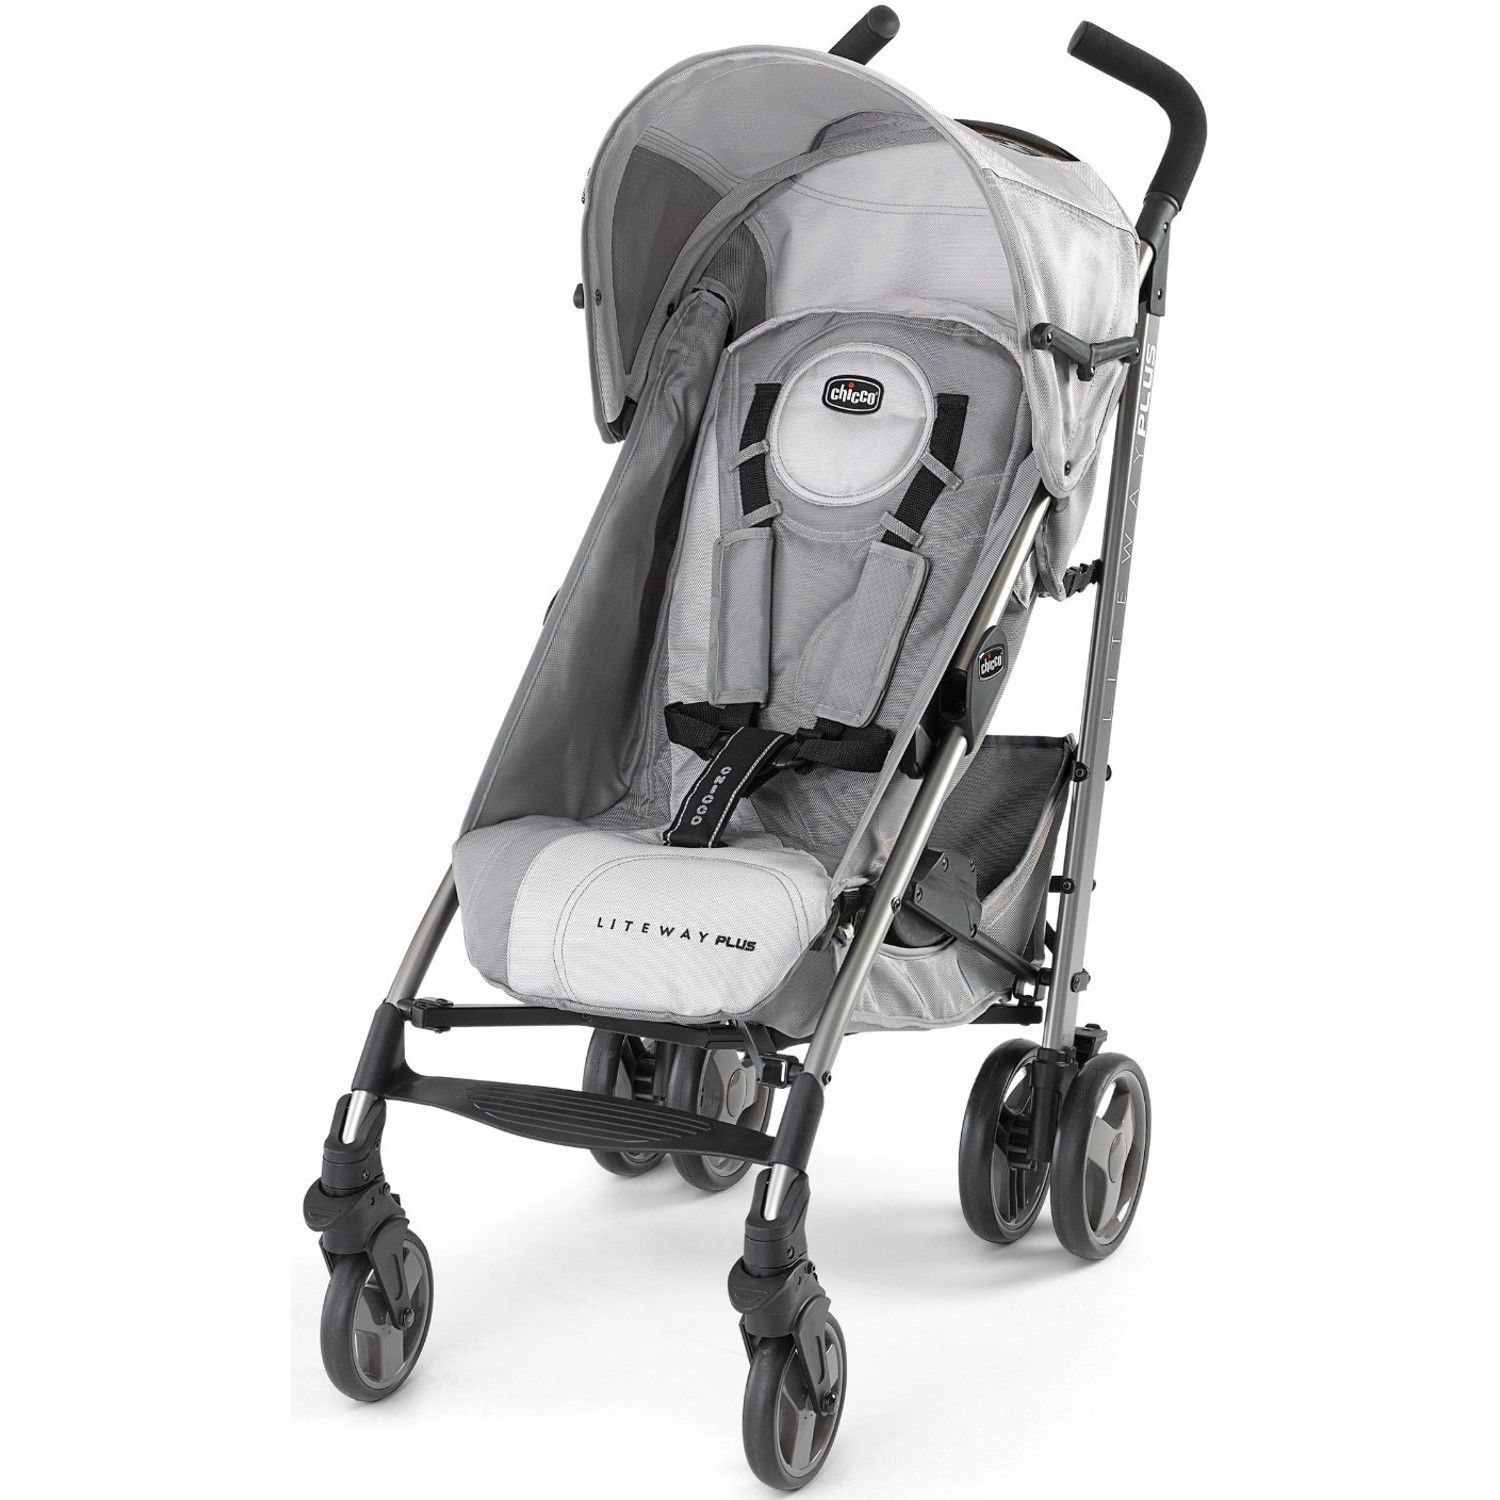 Chicco Liteway Plus Stroller Silver Chicco stroller